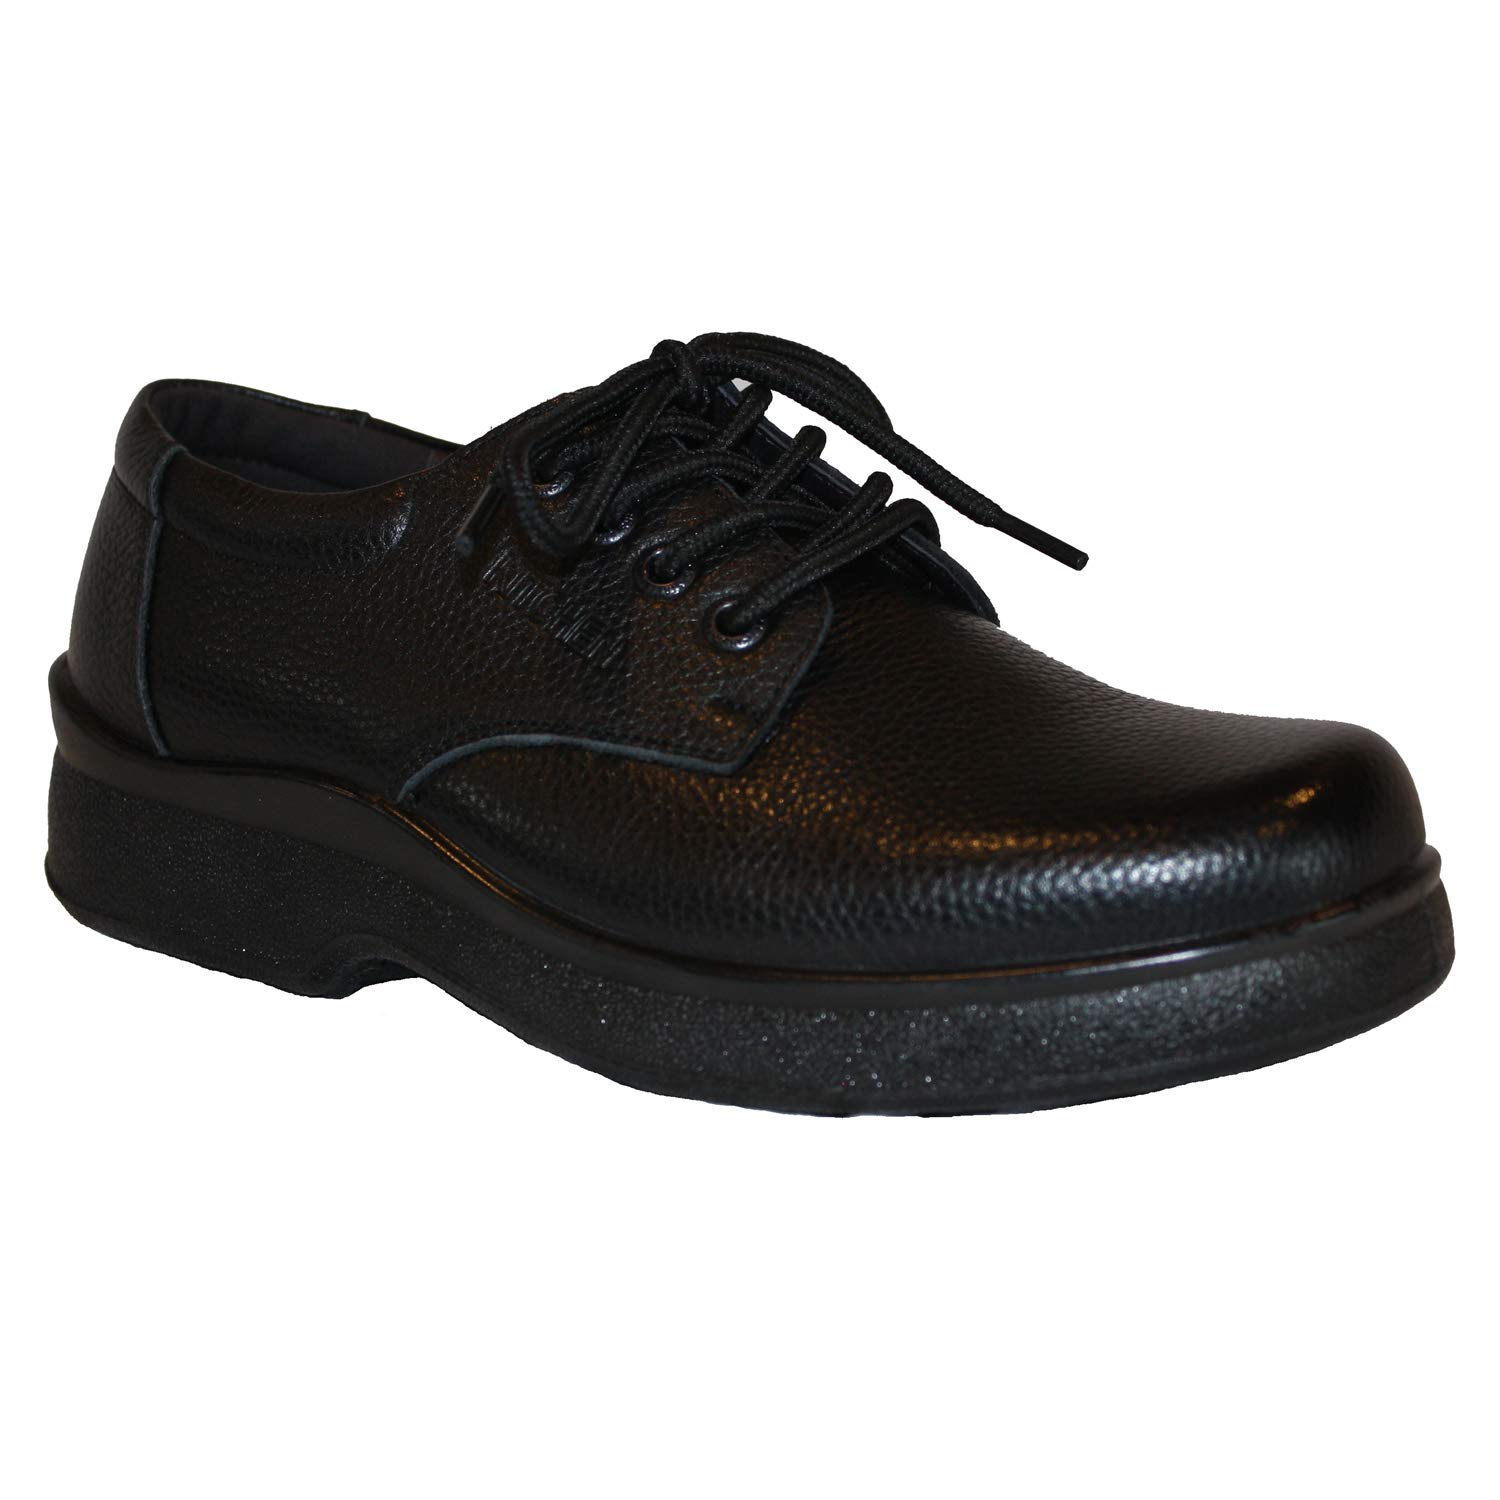 Shoes For Kitchen Men's Professional Nonslip Comfort Work Black Leather Shoe, Water and Oil Resistant (10.5) by Shoes For Kitchen